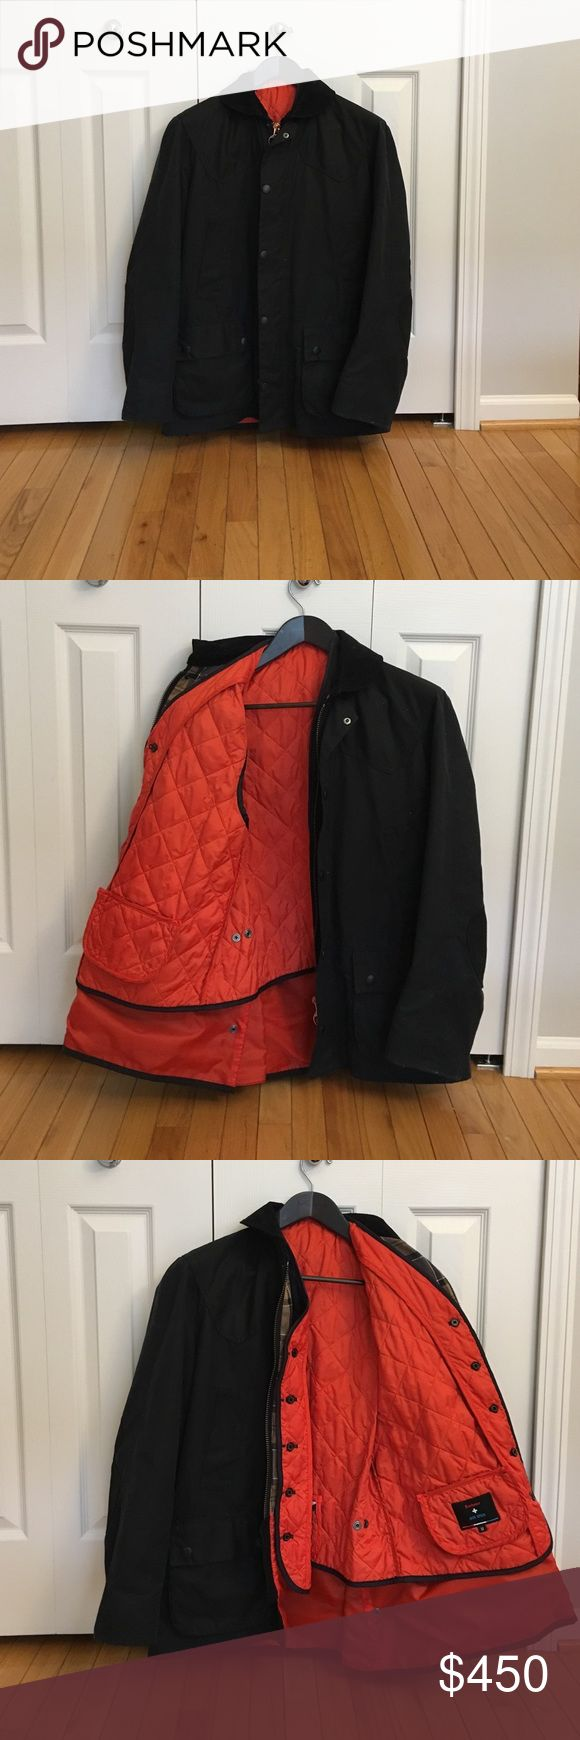 NWOT Jack Spade Barbour Wax jacket NWOT Jack Spade Barbour Wax jacket with removable orange vest. Never worn. Open to offers. Jack Spade Jackets & Coats Military & Field